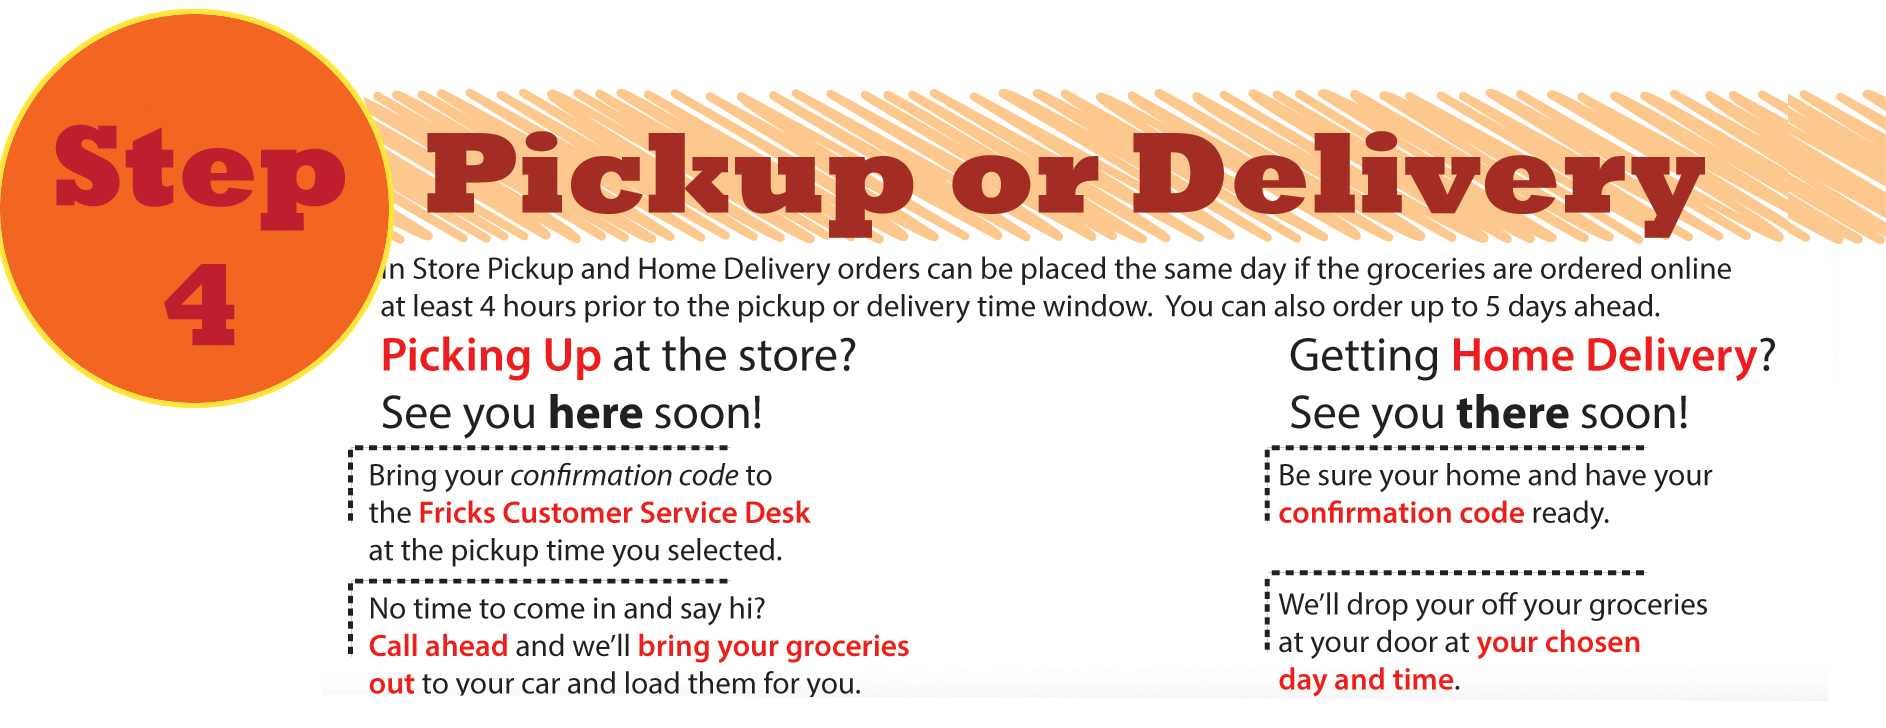 Step 4: Pickup or Delivery? In-store pickup and home delivery orders can be placed the same day if the groceries are ordered online at least 4 hours prior to the pickup or delivery time window. You can also order up to 5 days ahead. Picking up at the store-bring your confirmation code to the Fricks customer service desk at the pickup time you selected. Getting home delivery-Be sure your home and have your confirmation code ready. We'll drop off your groceries at your door at your chosen day and time.